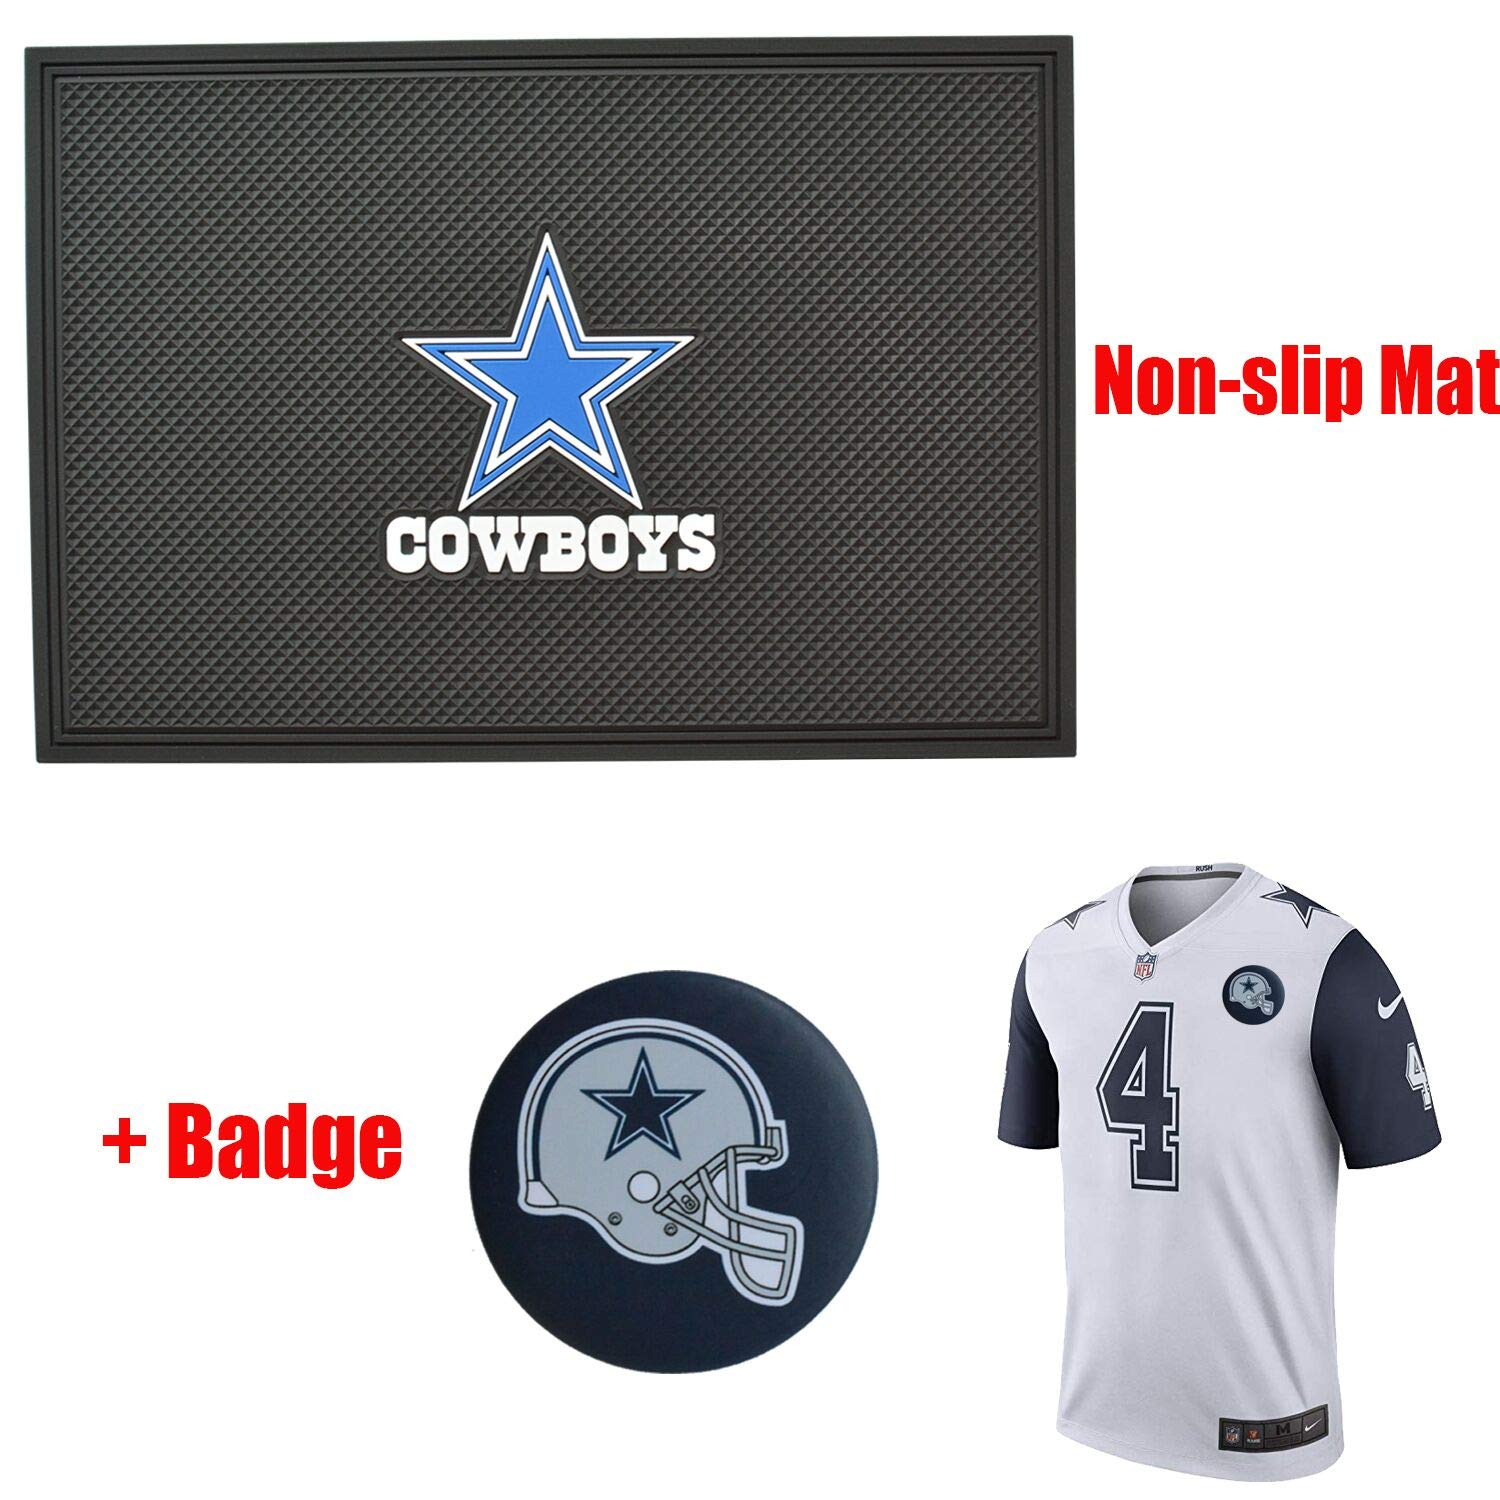 2 Pack NFL Cowboys Logo Universal Anti-Slip Sticky Anti Slide Dash Cell Phone Mount Holder Mat Car Dashboard Sticky Pad Adhesive Mat-Holds Cell Phones Keys and More,With Cowboys Keychain. Sunglasses